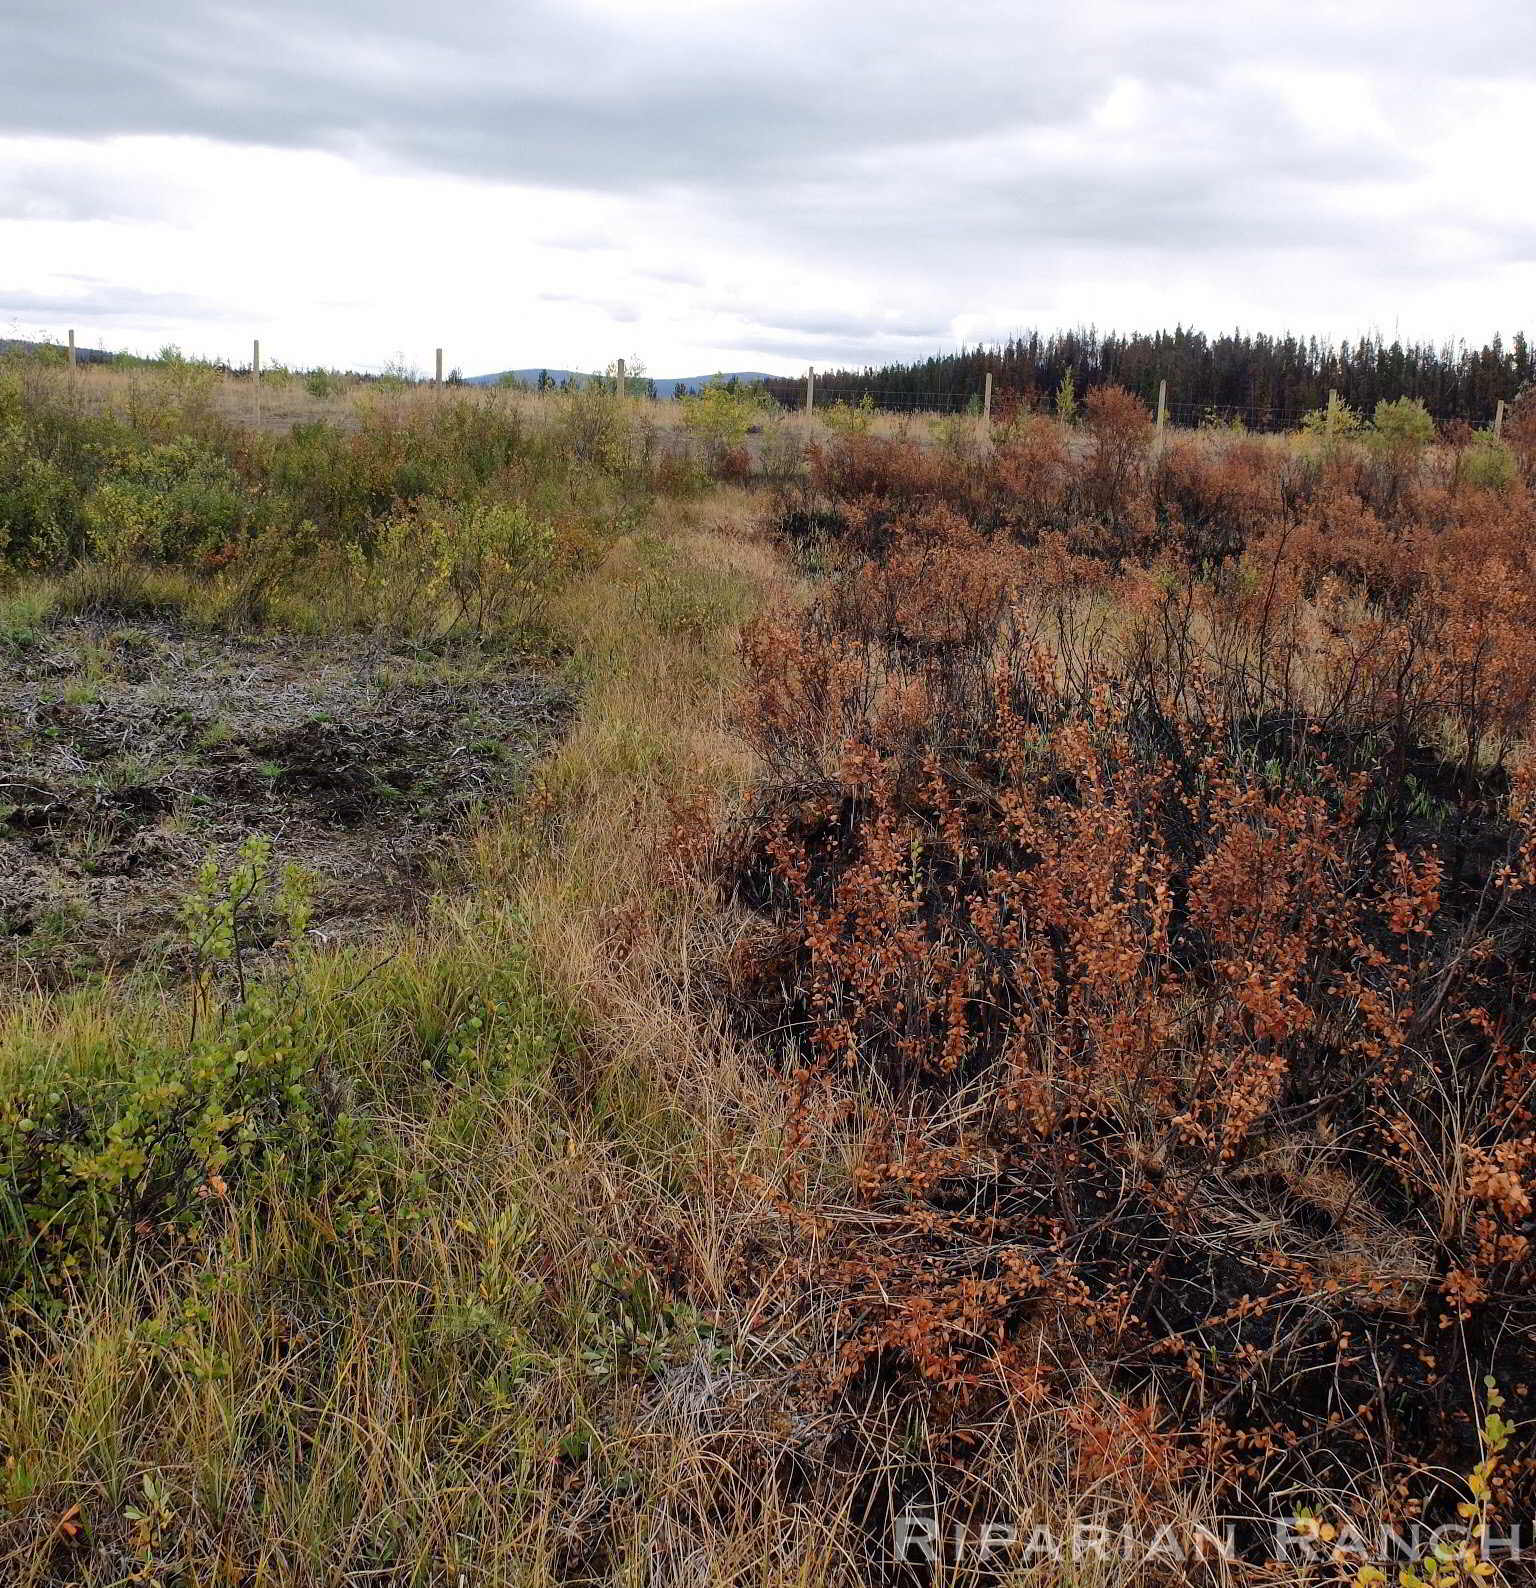 Rotationally grazed field with green plants on left and burned plants on right due to wildfires